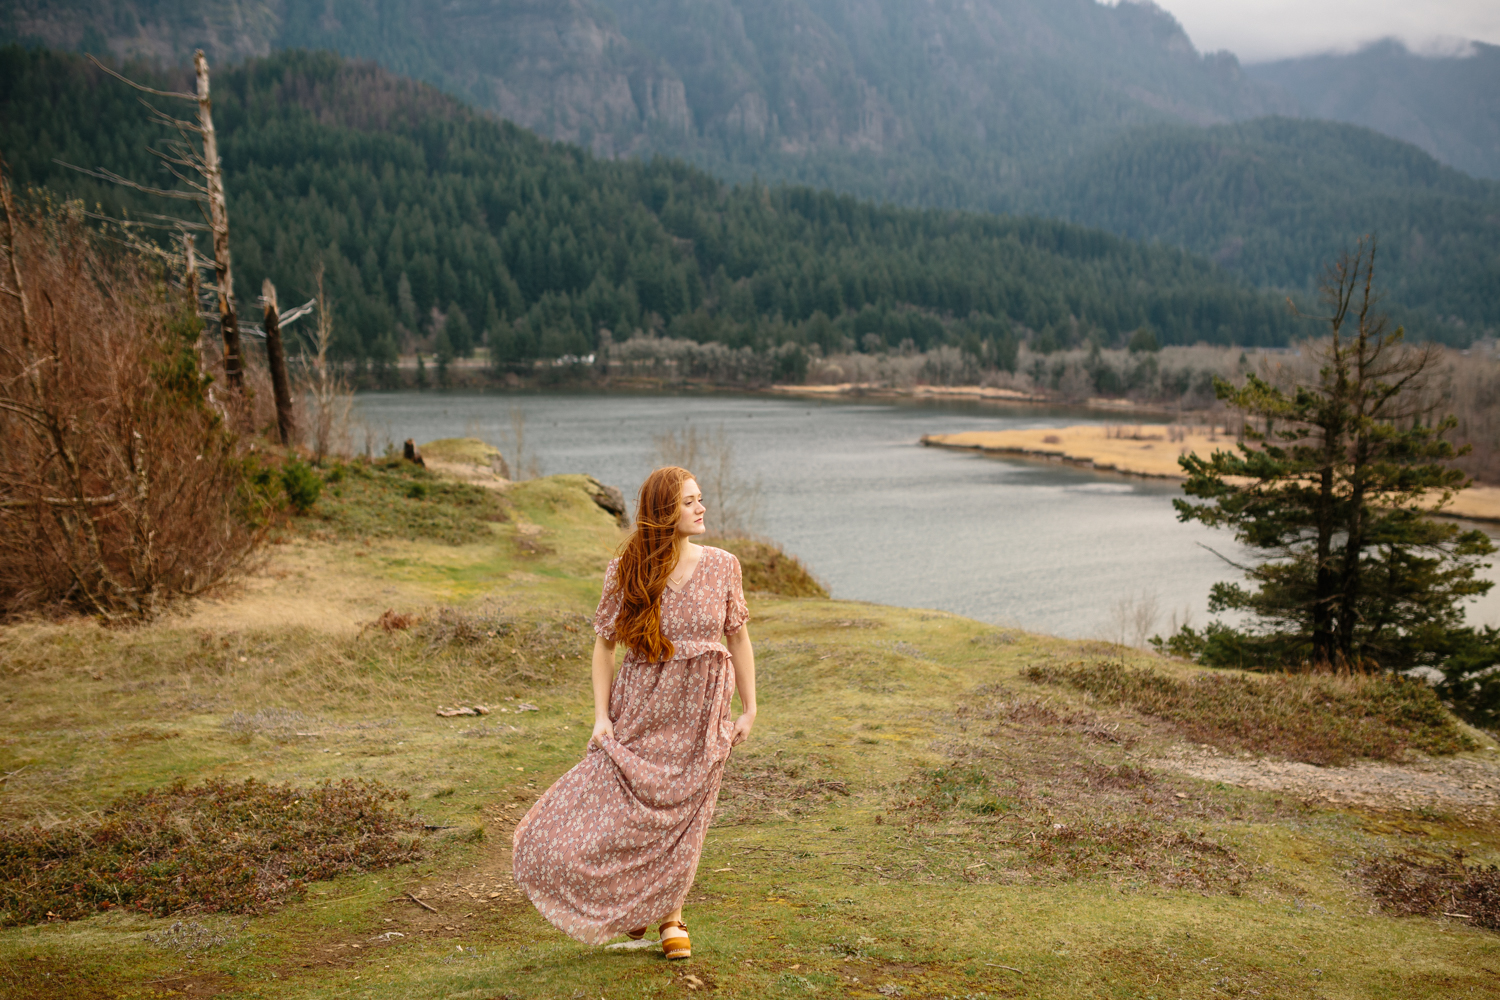 A Beautiful, Red-Haired Pregnant Woman Walking on a Windy Day in